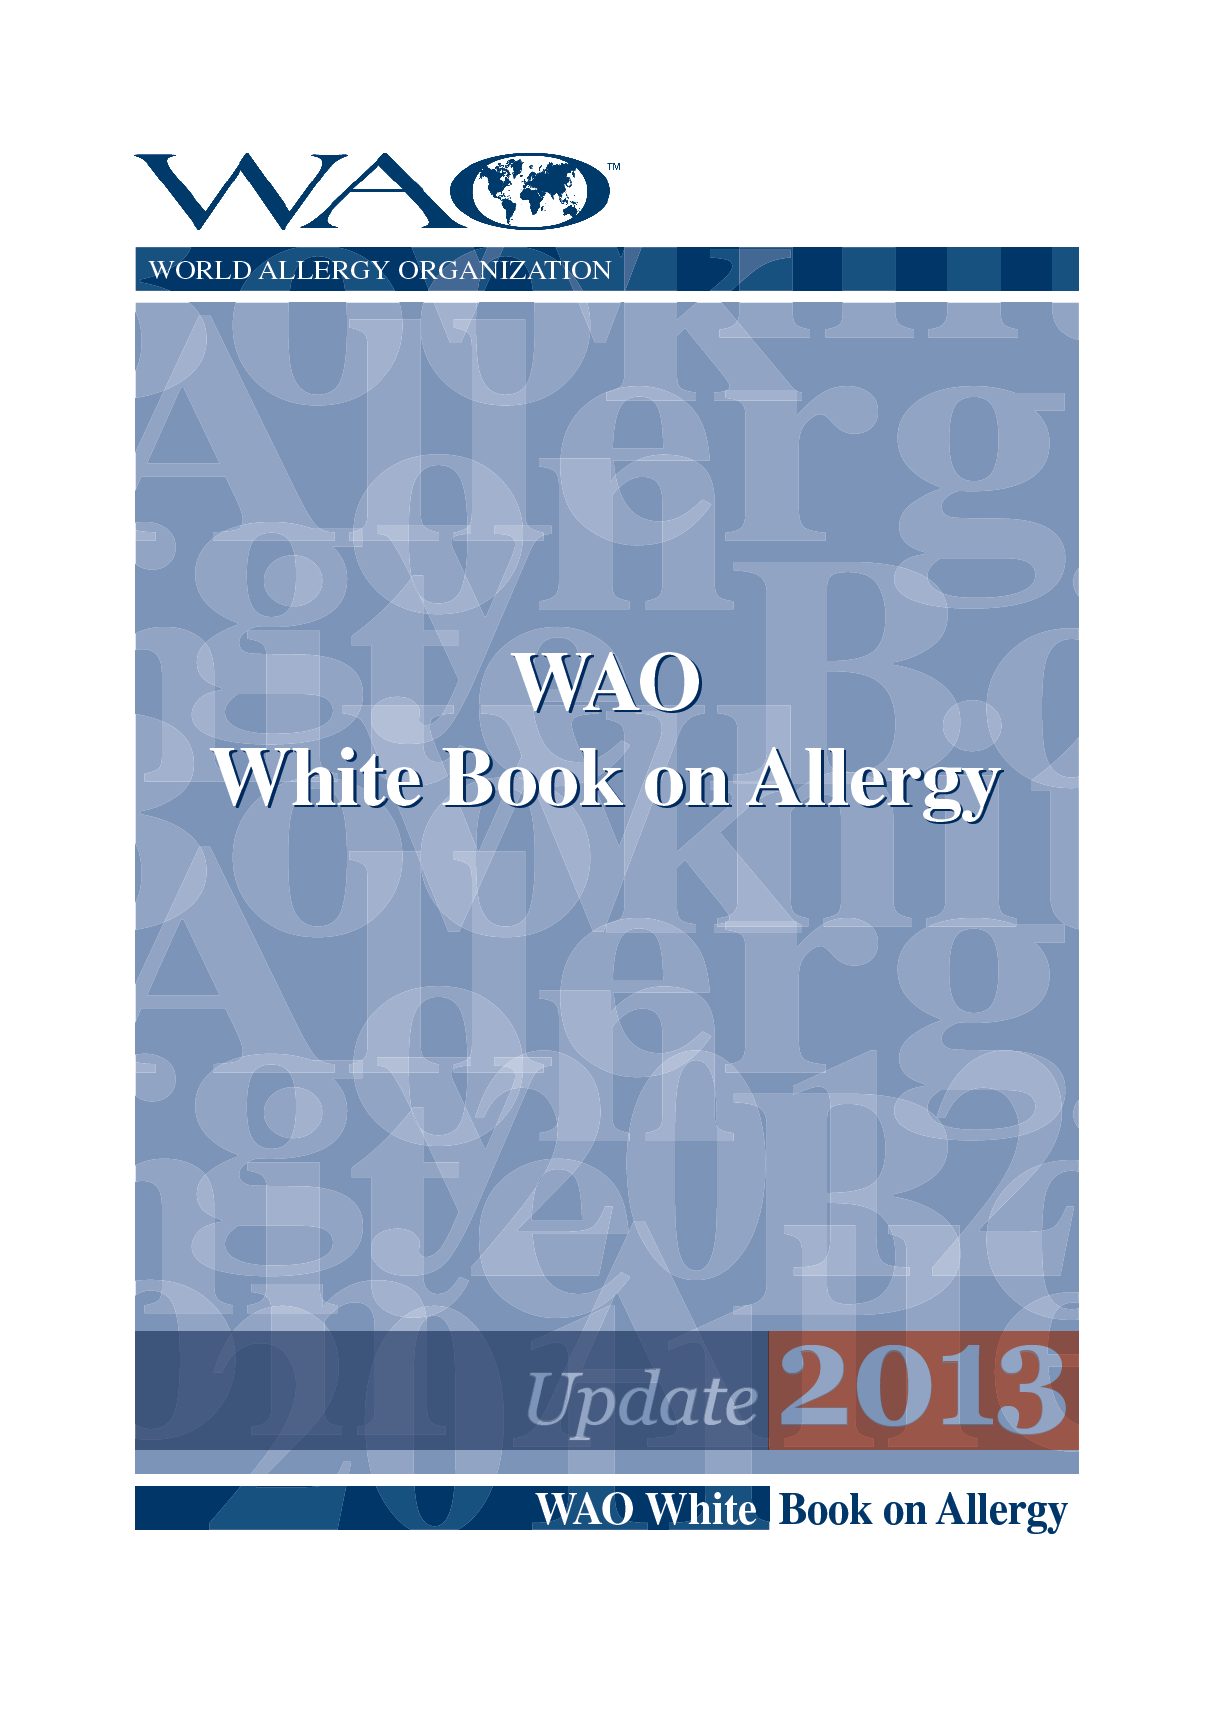 White Book on Allergy